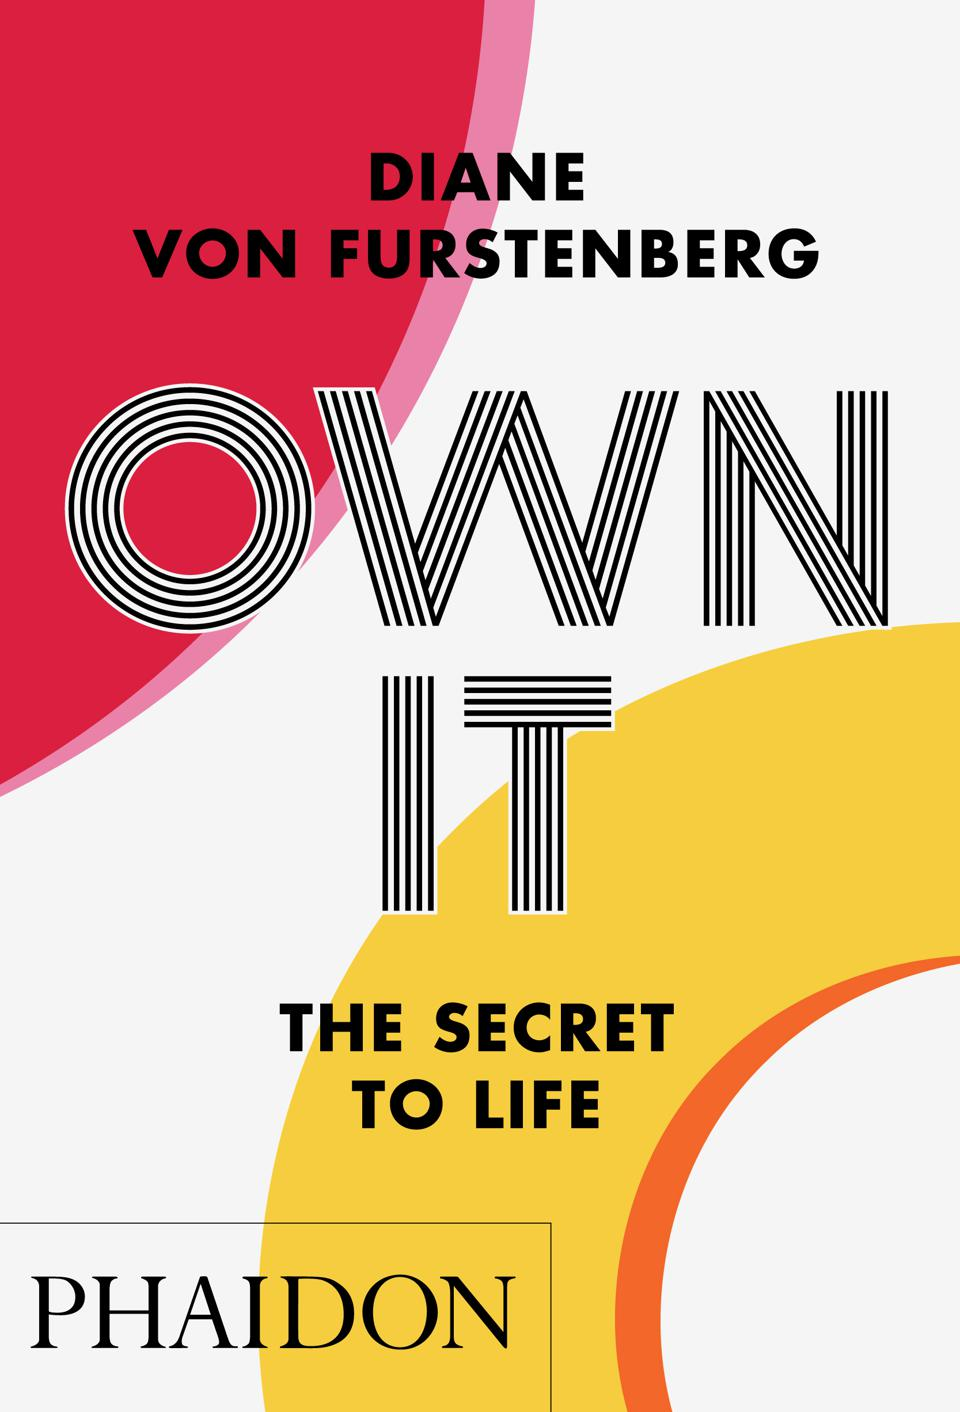 In ″Own It,″ Diane von Furstenberg shares hard-won advice. The book cover features red and yellow graphics.